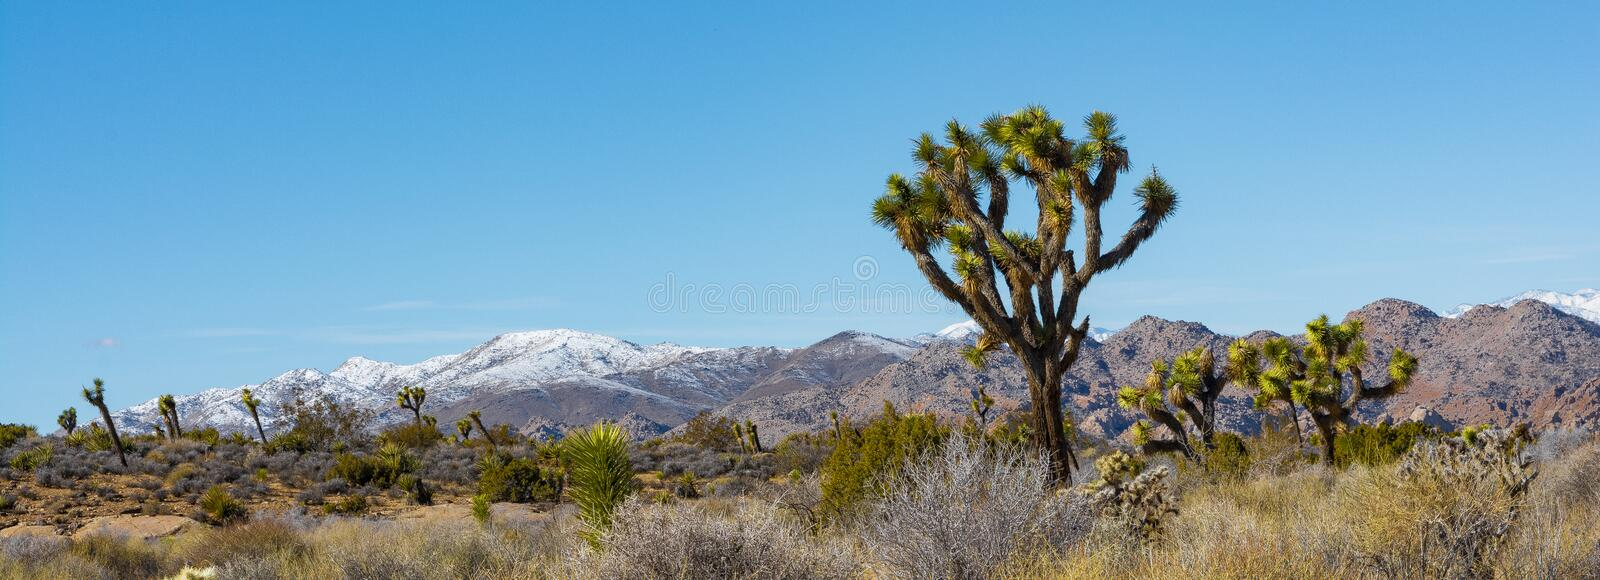 Panorama do parque de Joshua Tree National fotografia de stock royalty free